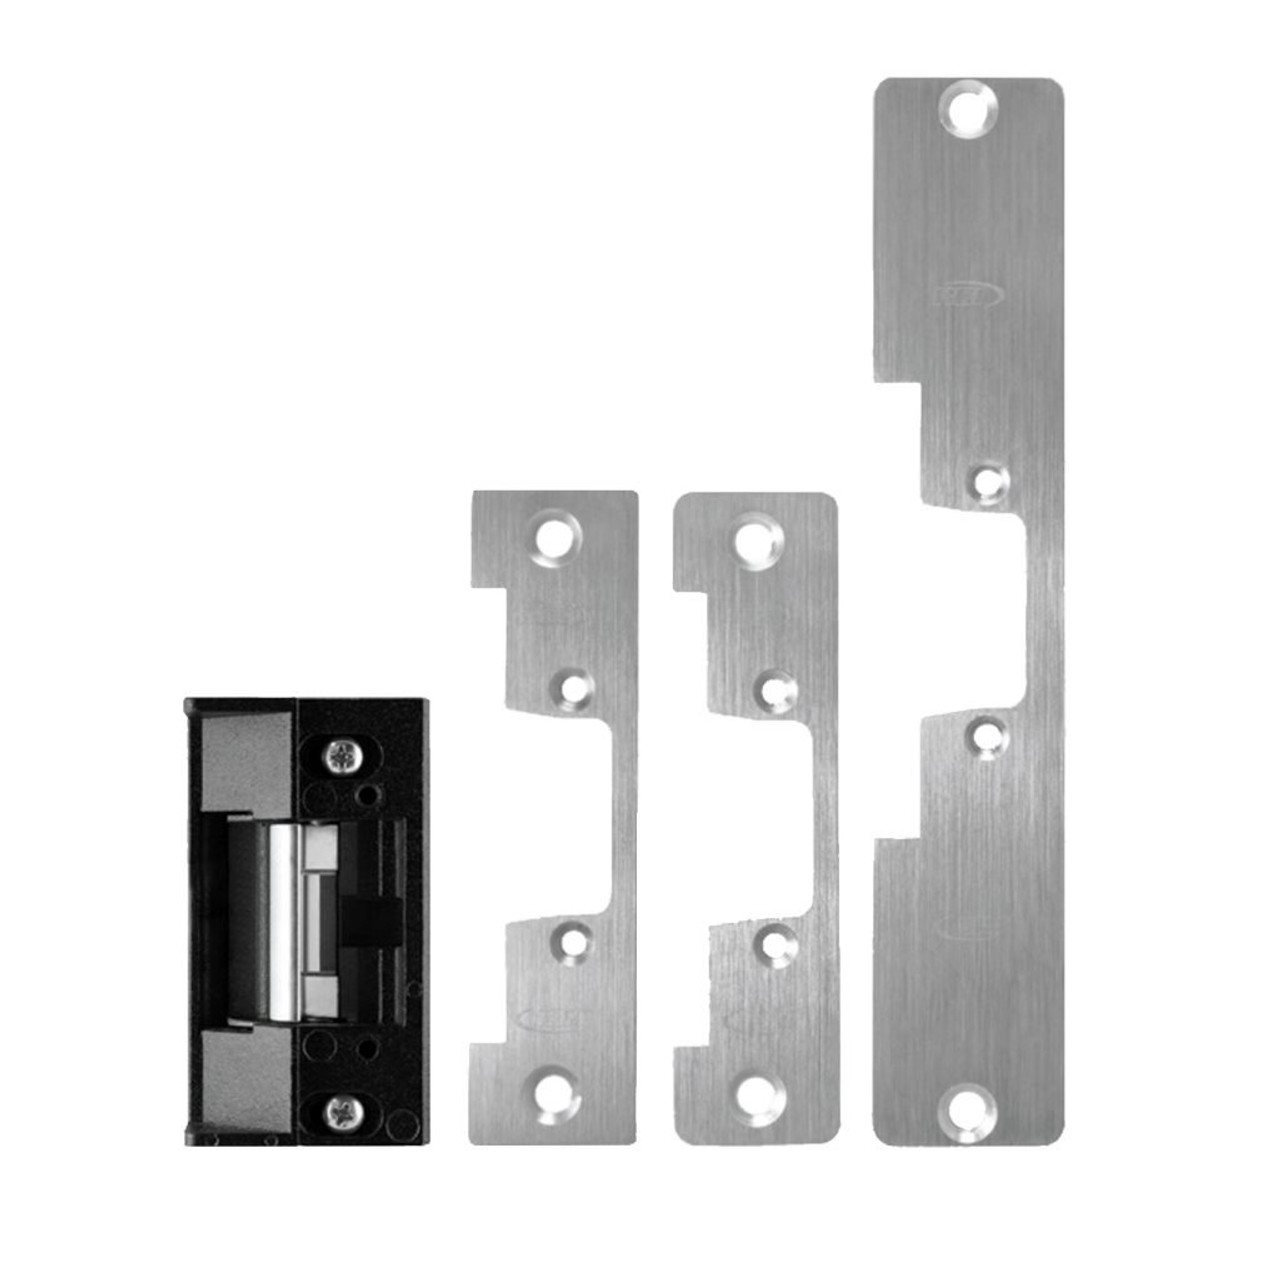 RCI S65U Strike Plate 14- 1-1/4  x 4-7  sc 1 st  TremTech Store - Tremtech Electrical Systems & RCI 65U Electromagnetic Door Strike - TremTech Electrical Systems Inc